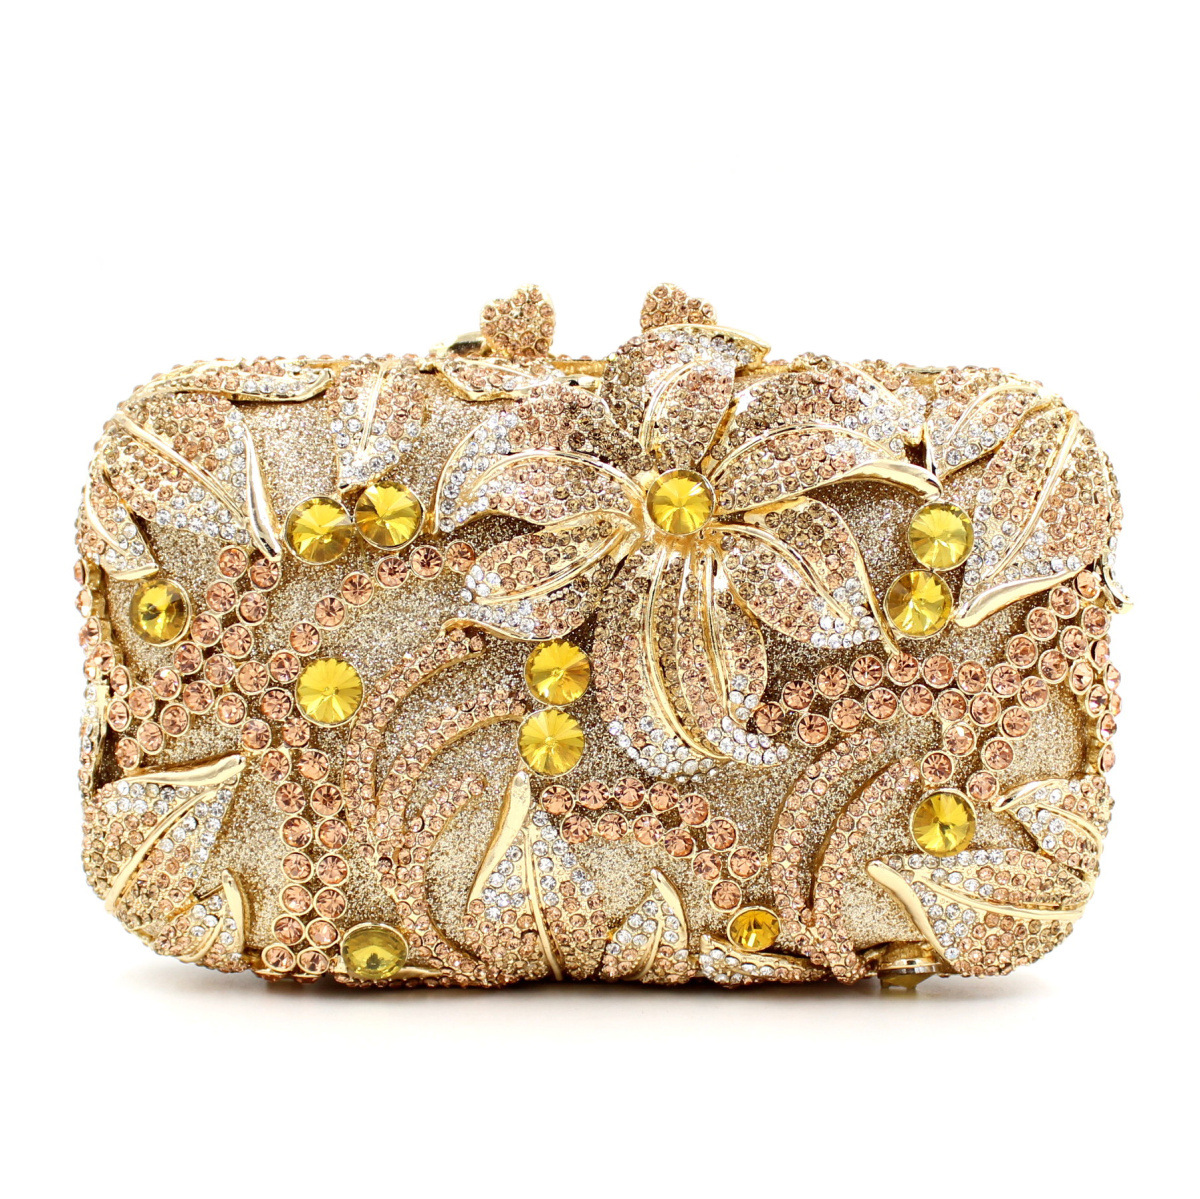 2016 New Both Side Diamond Flower Crystal Beaded Evening Bag Clutch Bags Hot Styling Day Clutches Lady Brides Wedding Purse 2016 new side sun diamond crystal evening bag clutch bag hot styling day clutches lady wedding woman bag free shipping women bag